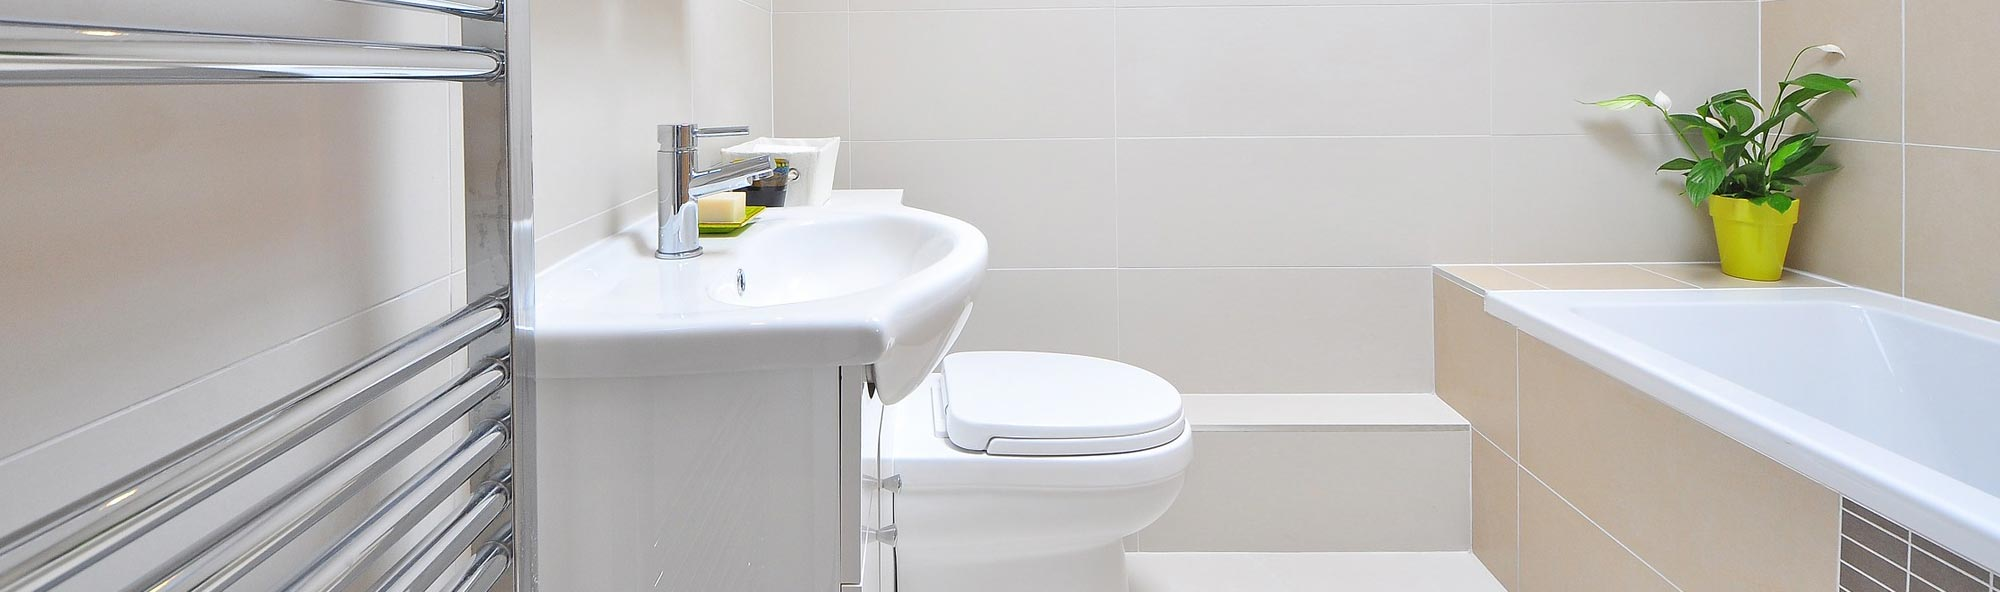 custom-bathroom-makeover, Kitchen Renovation, Bathroom Renovation, House Renovation Auckland